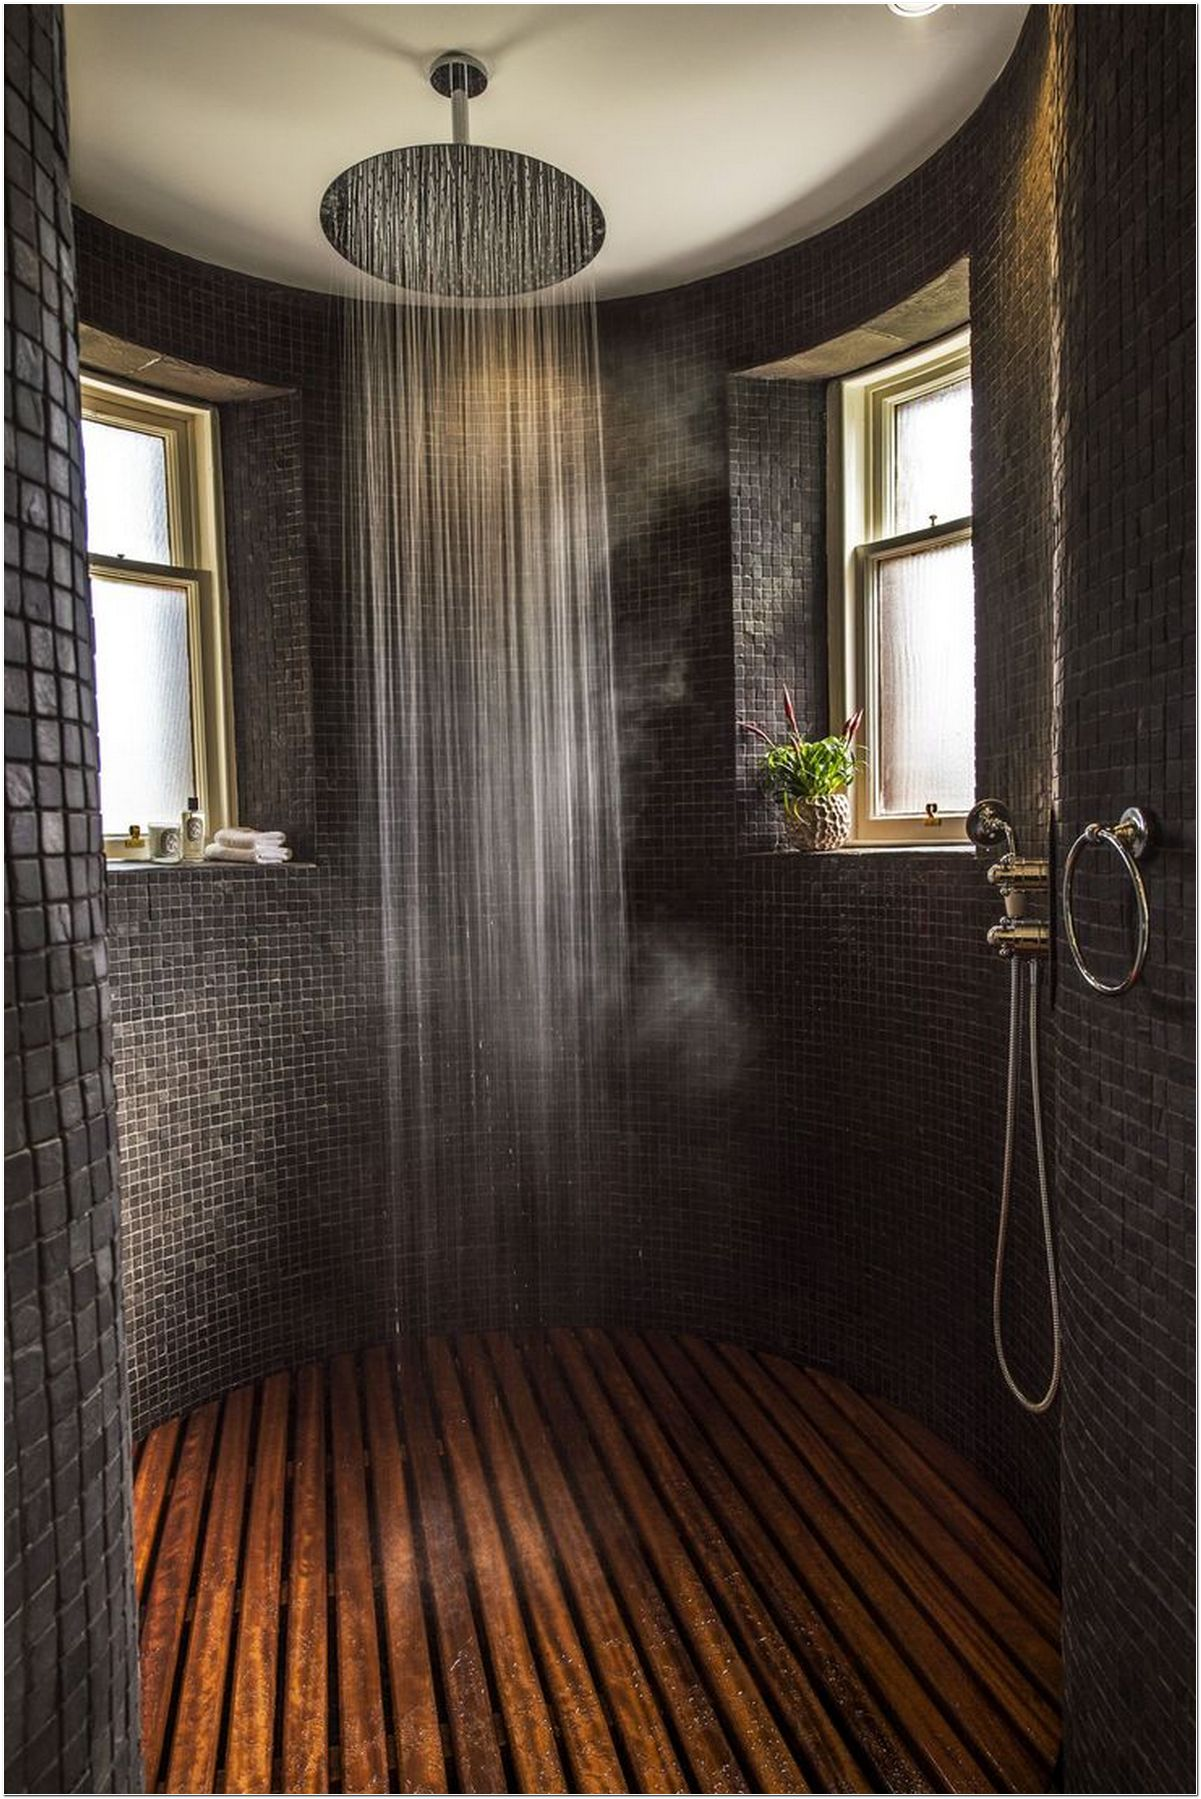 72 Luxury Shower Ideas For House in the Woods by Kim Smith